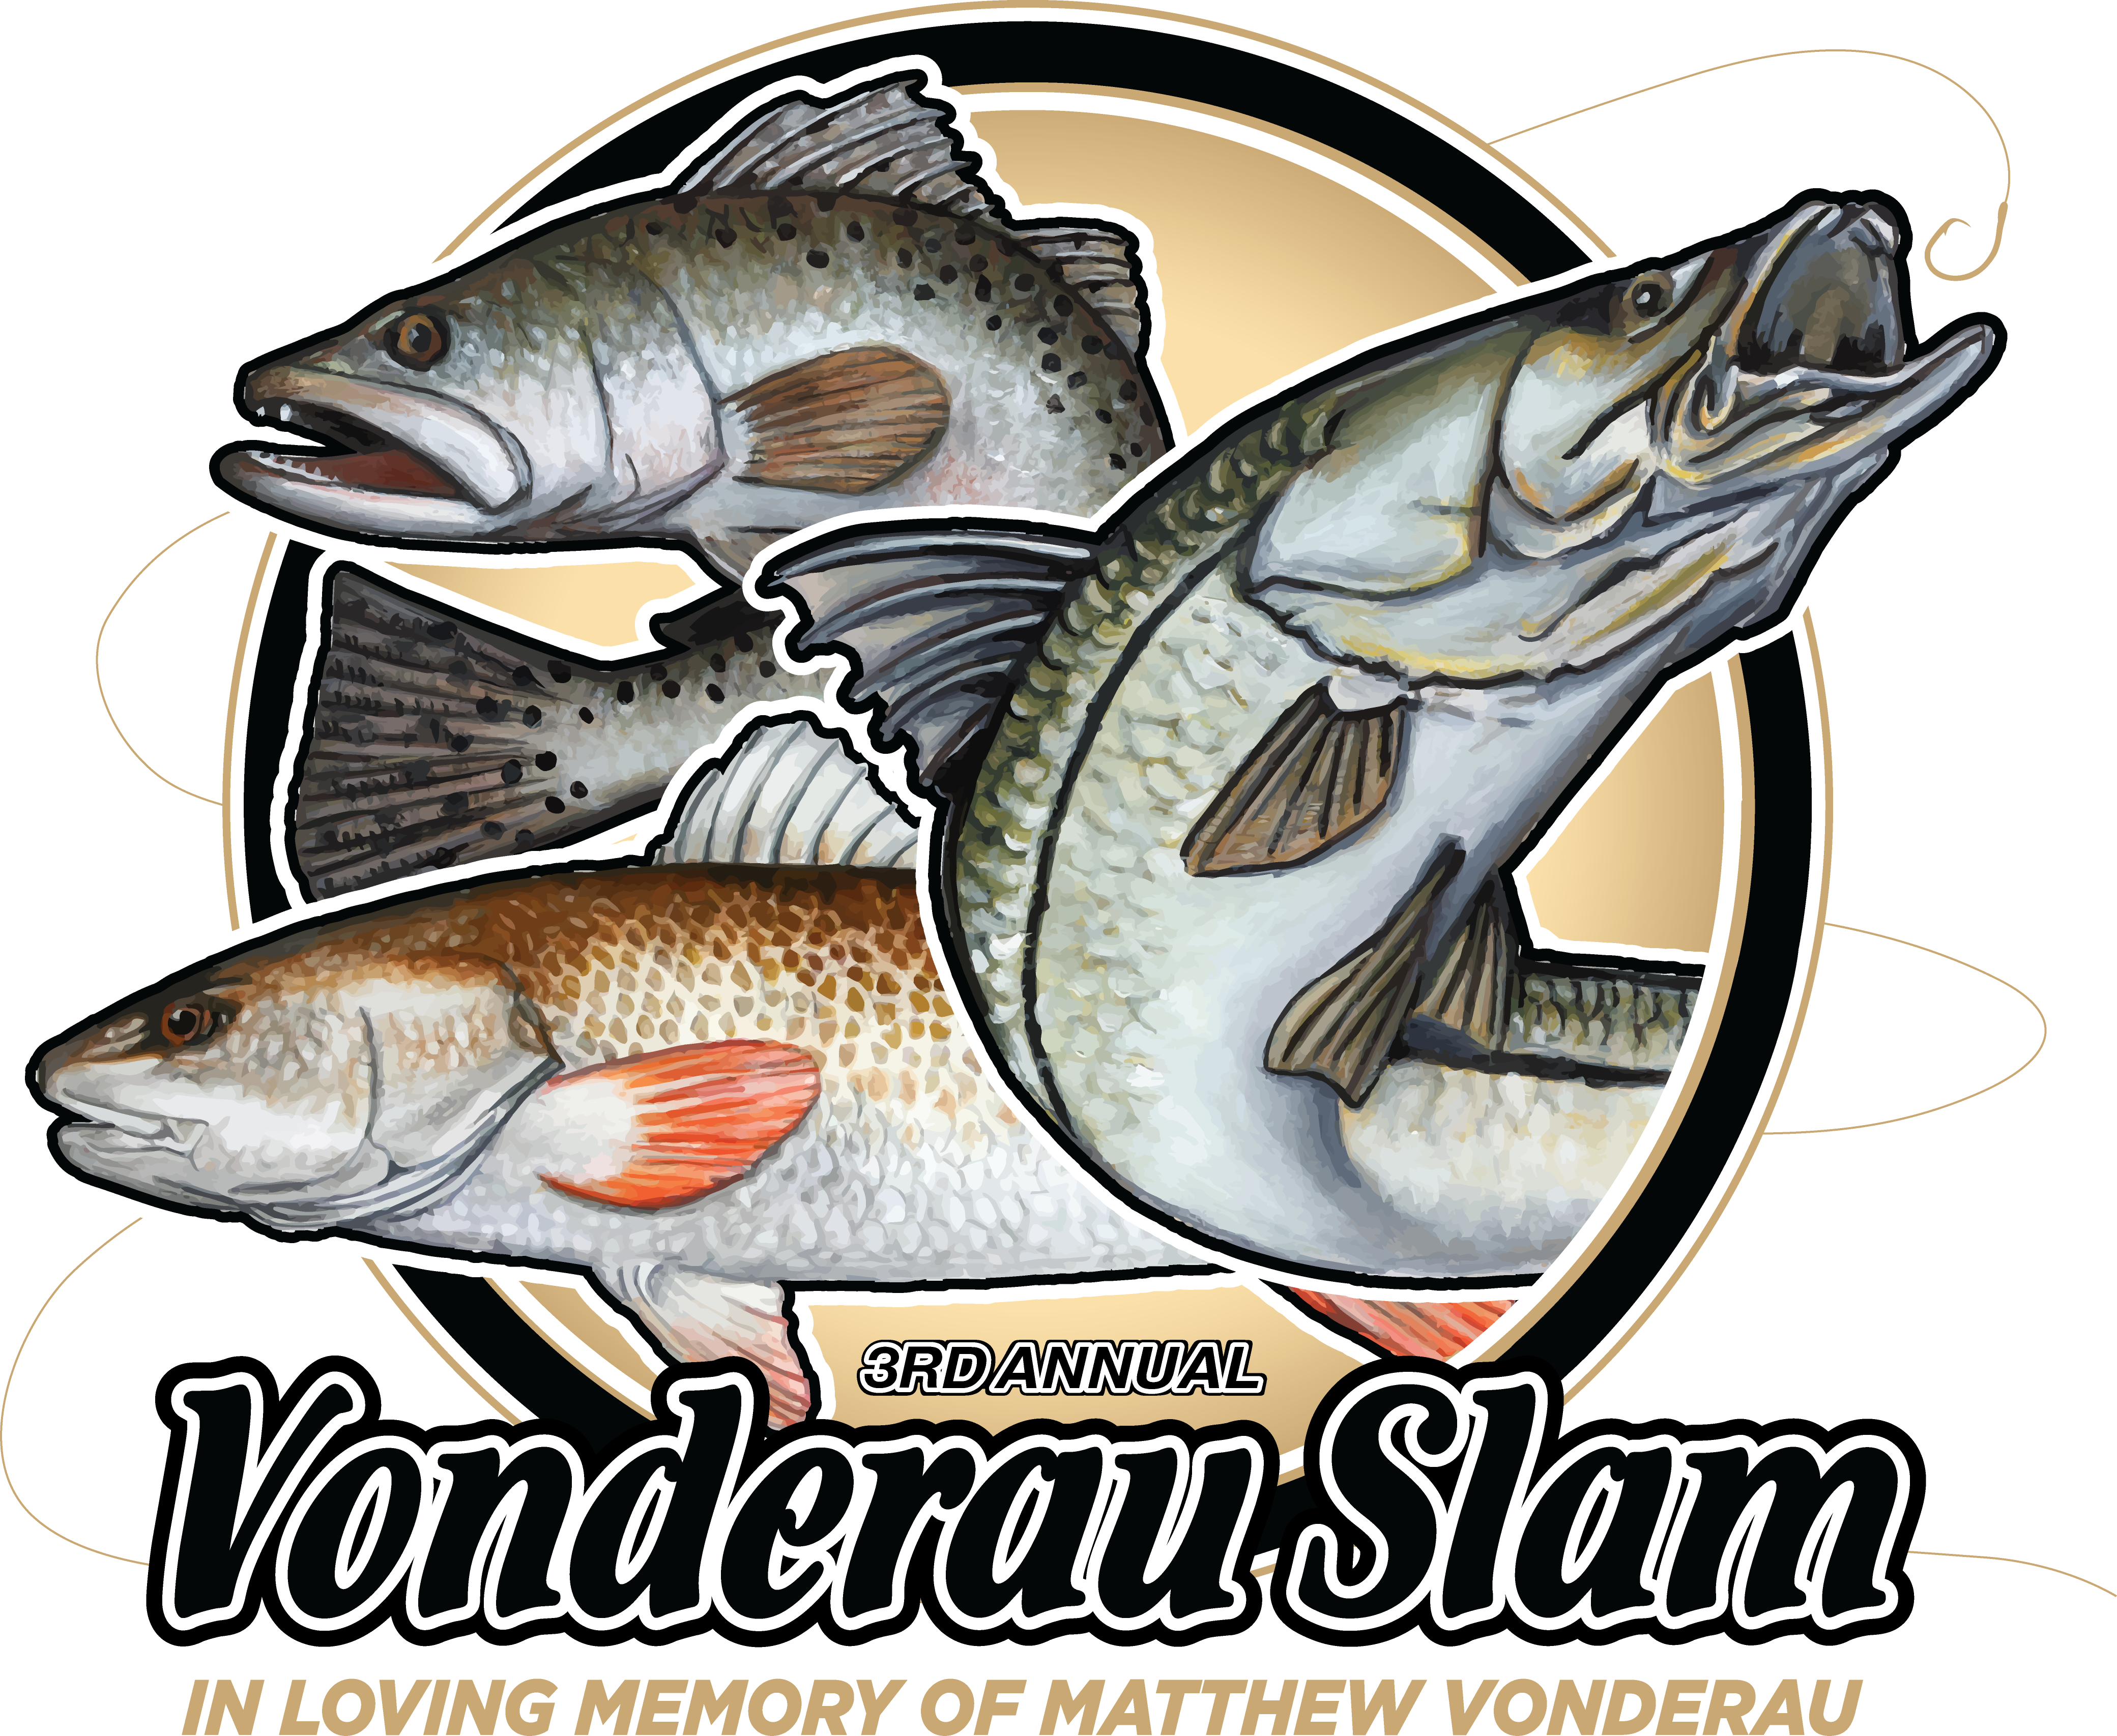 Trout clipart spotted bass.  rd annual vonderau